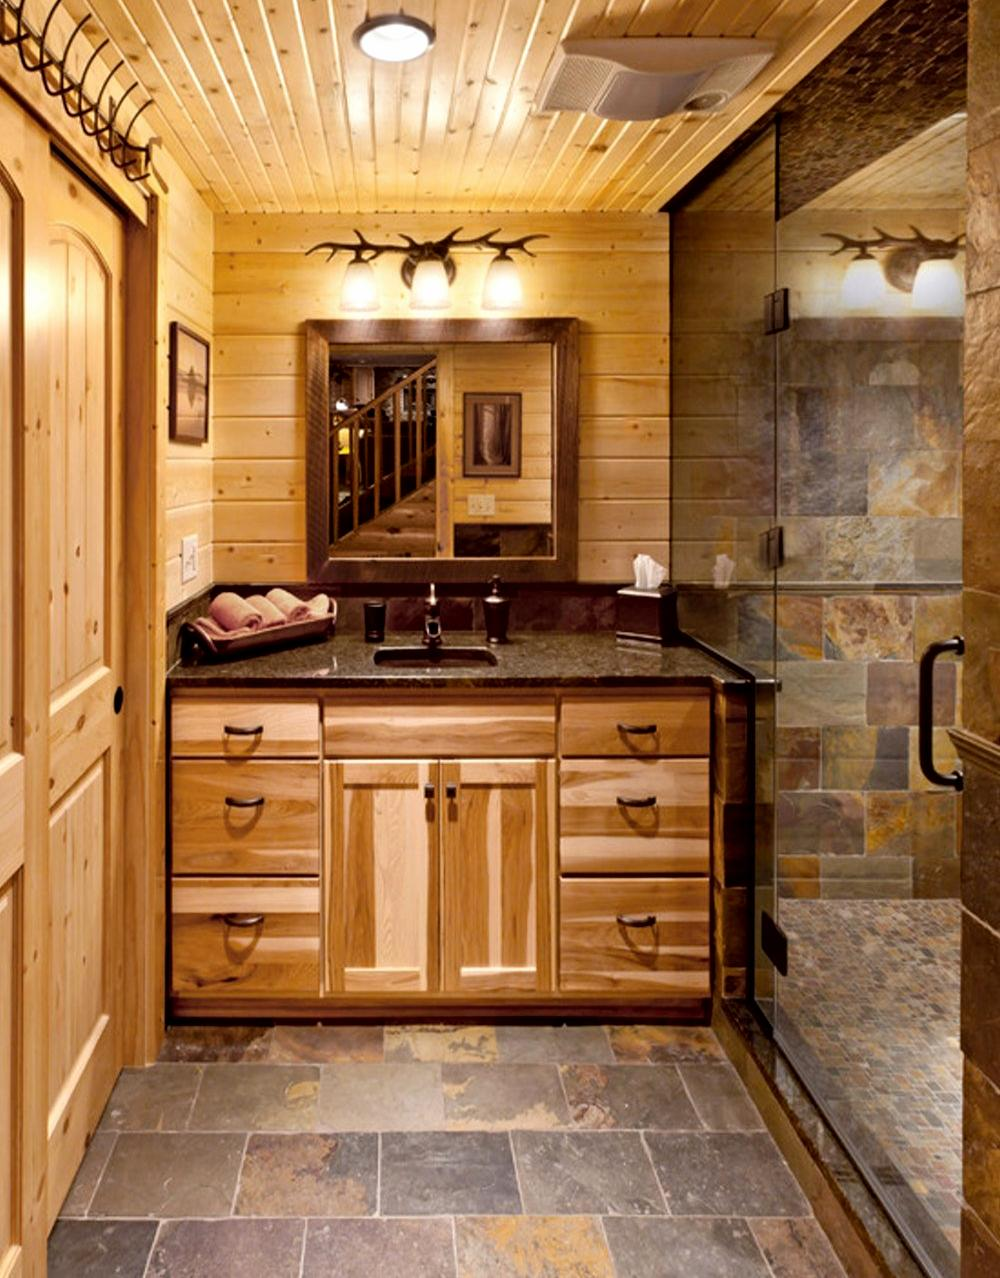 Perfect JAUREGUI Architecture Interiors Construction Gorgeous Rustic Bathroom With Terracotta Tiles For The Wall And Flooring From Anna Addison Photography Terracotta Tiles Bring Old World Charm To The Mediterranean Bathroom Design RJ